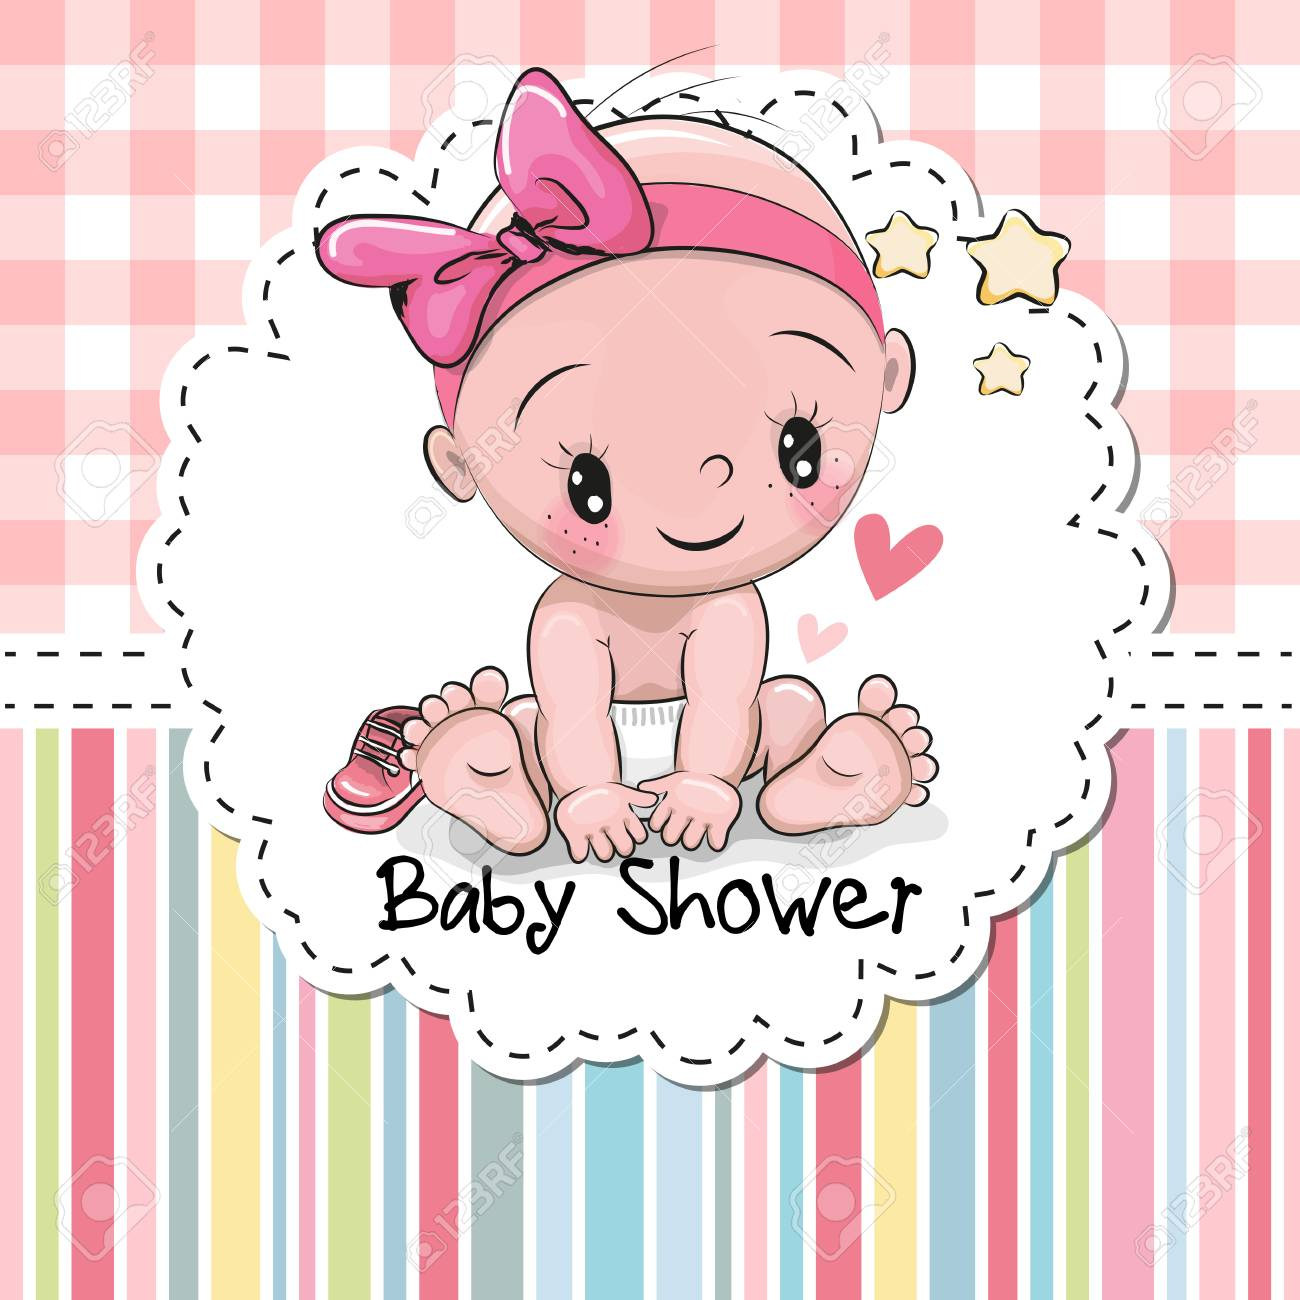 Baby shower verse for card neat baby wish cards baby wish cards baby funny baby shower card messages astonishing baby shower wishes and m4hsunfo